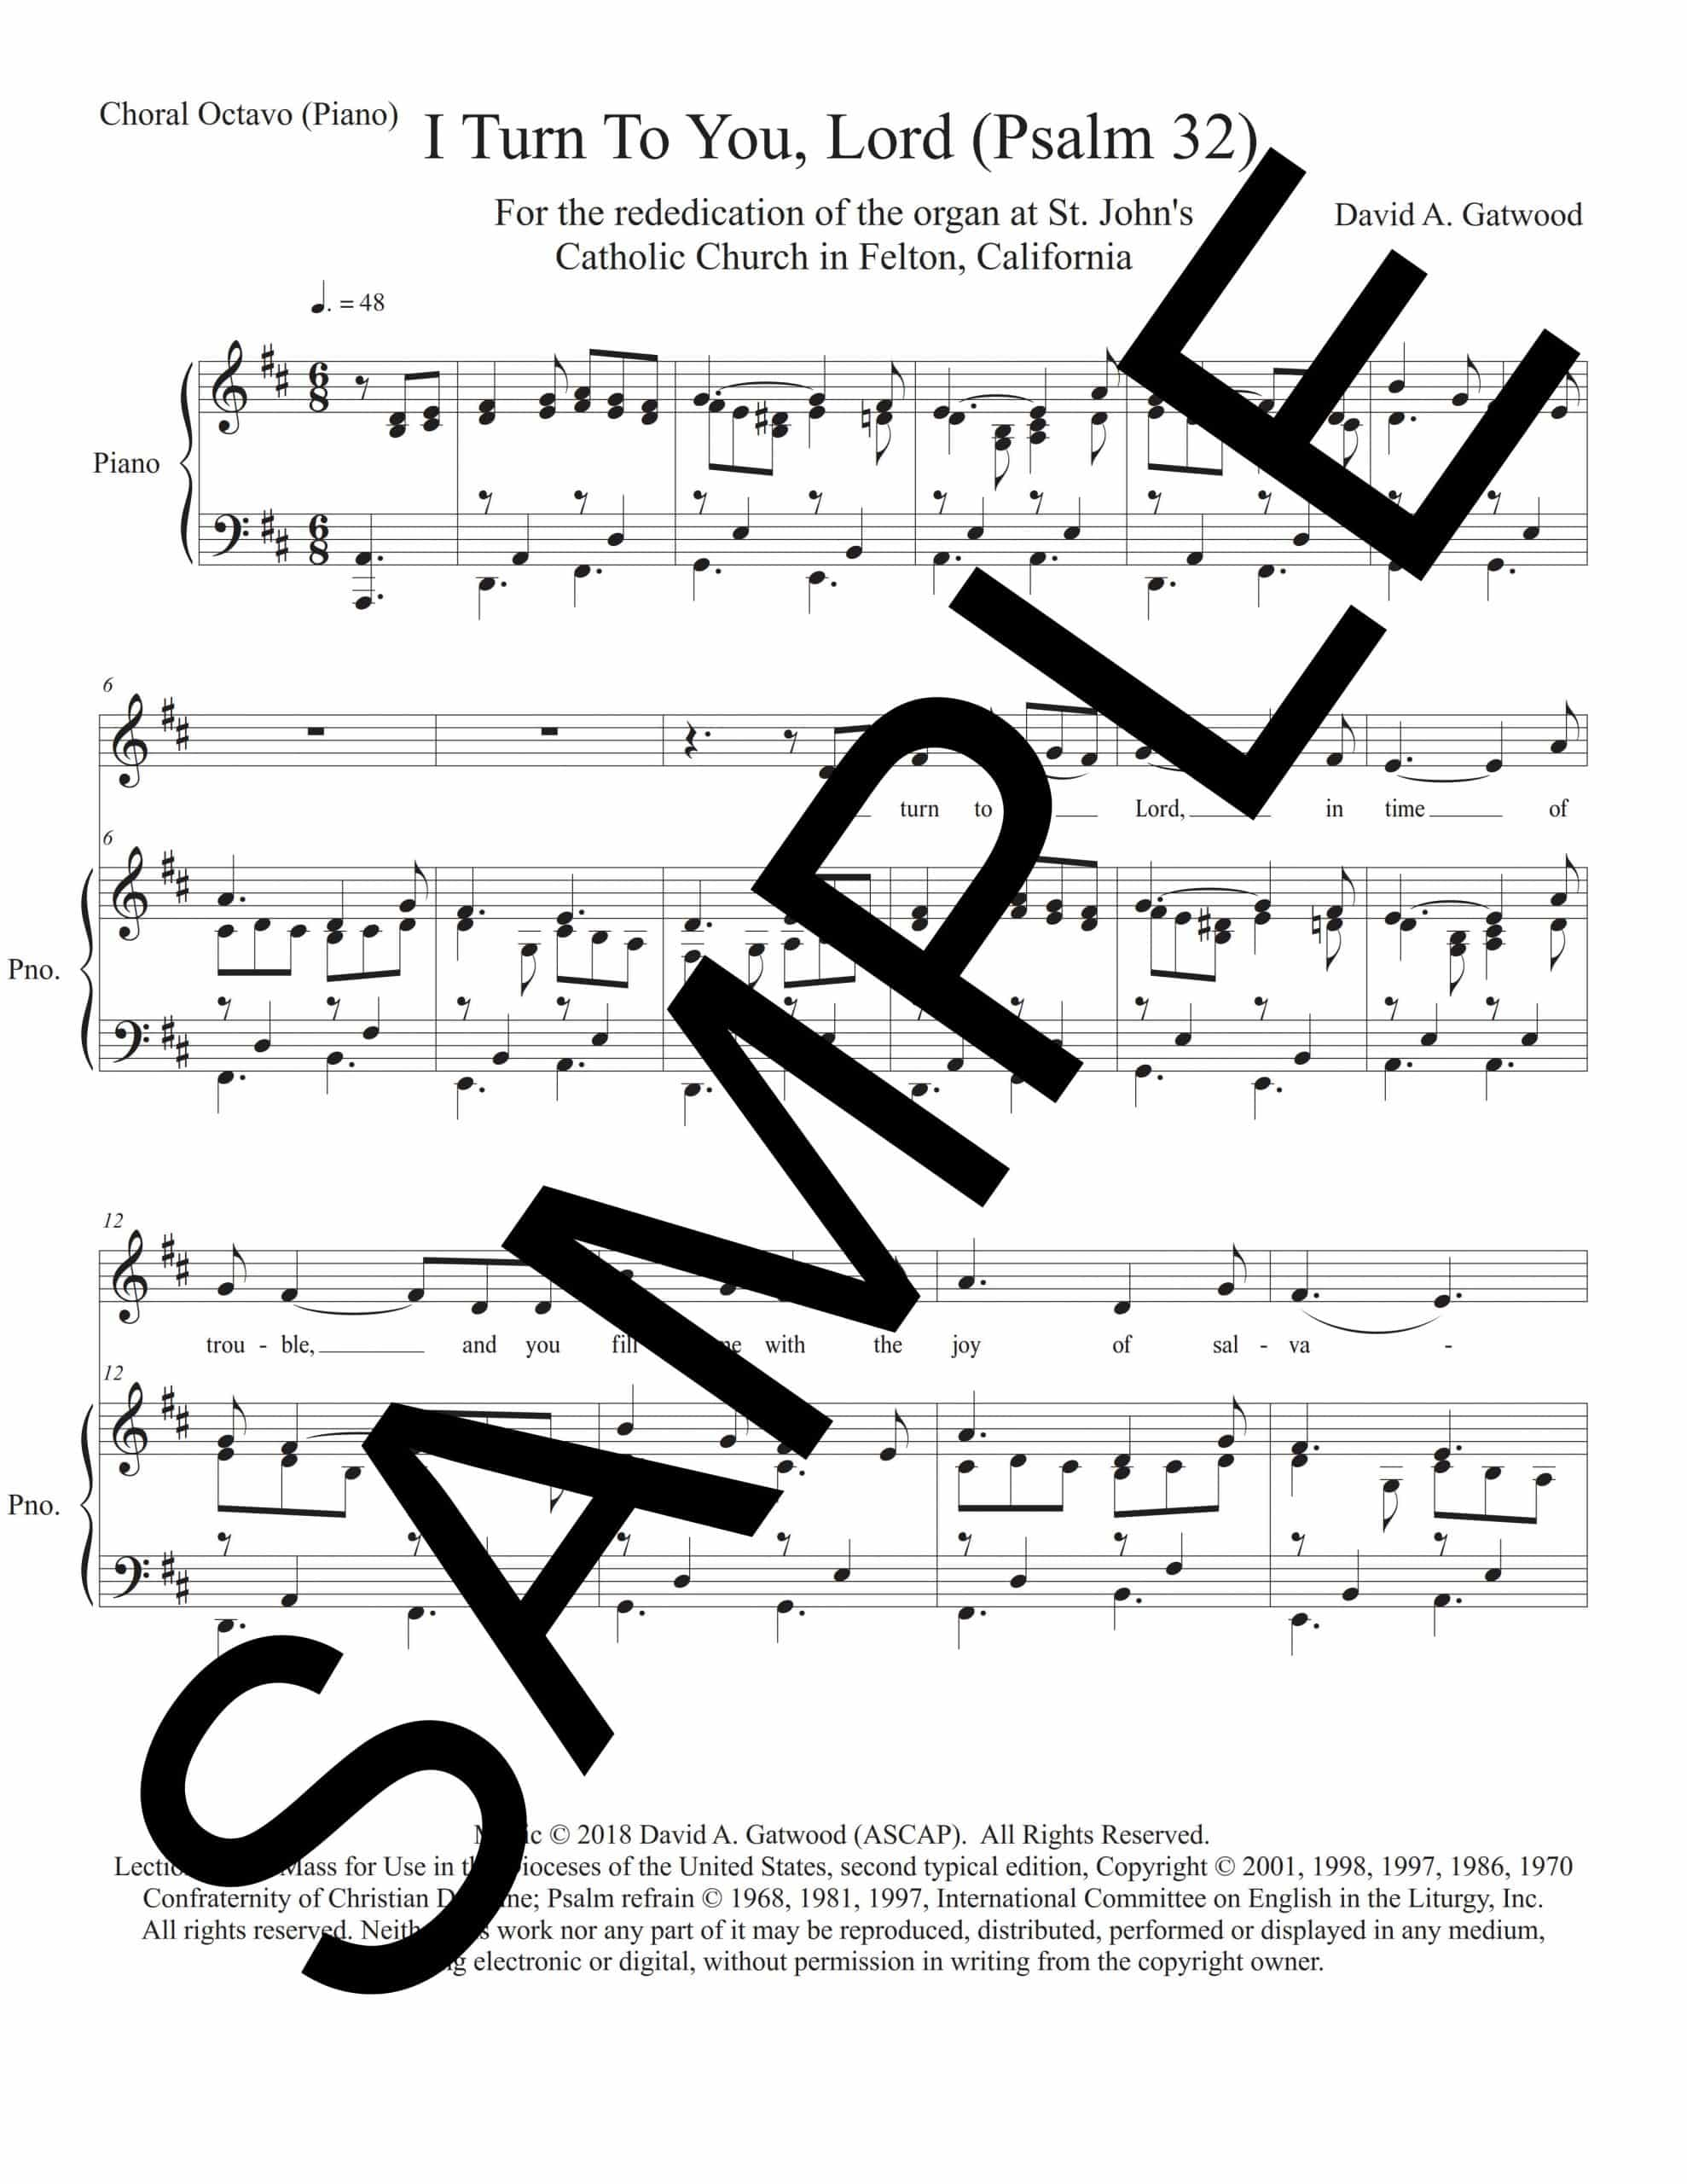 I Turn To You Lord Psalm 32 Sample Choral Octavo Piano scaled